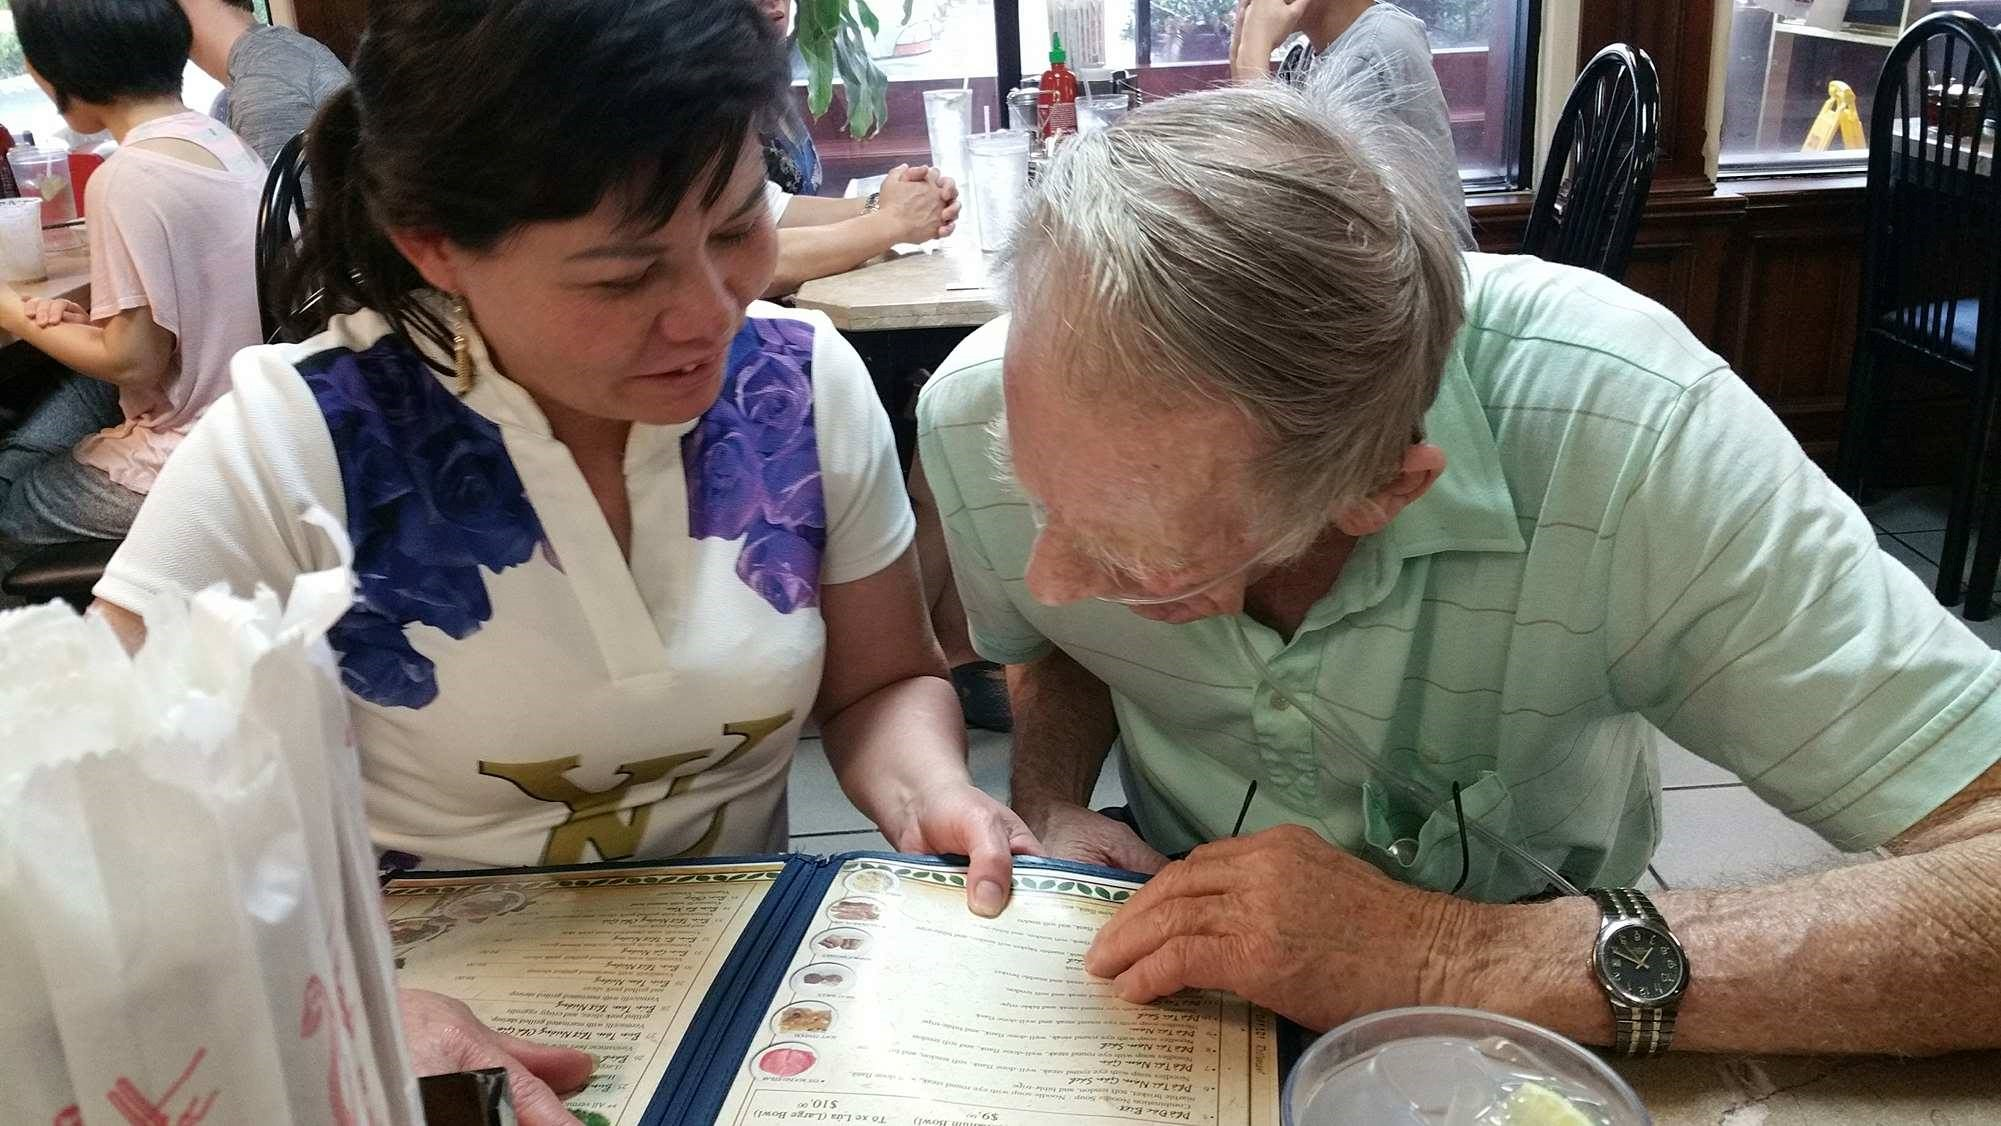 Nguyễn Thị Kim Nga, left, helps her father, Gary Wittig, decide on Vietnamese dinner during their first meeting in Atlanta.